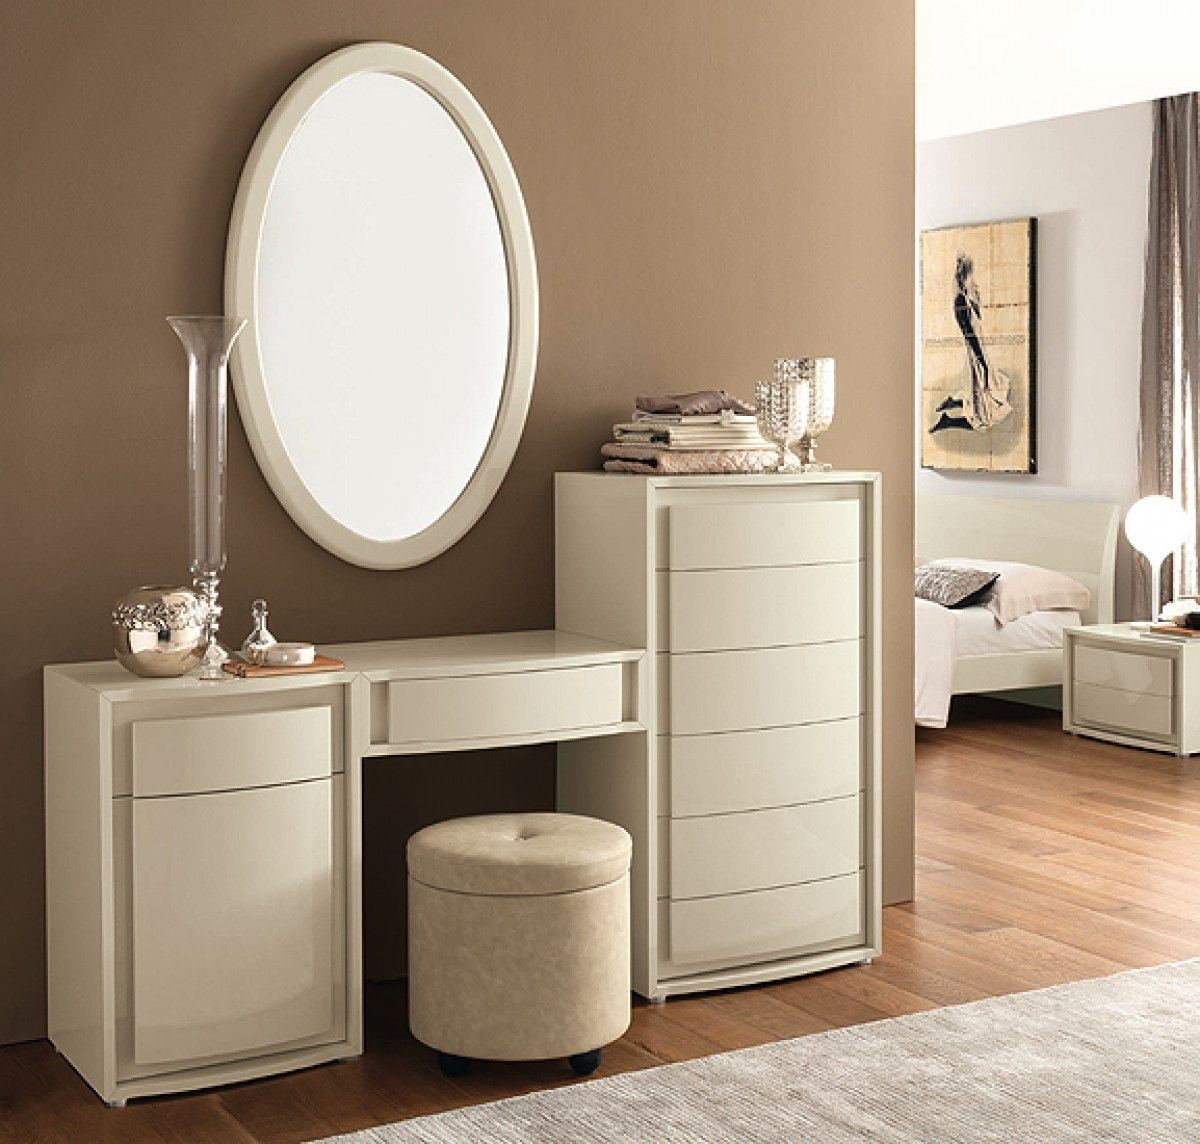 Online Store With Unique Selection Of Home And Office Furniture Dressing Table Design Modern Dressing Table Designs Bedroom Dressing Table